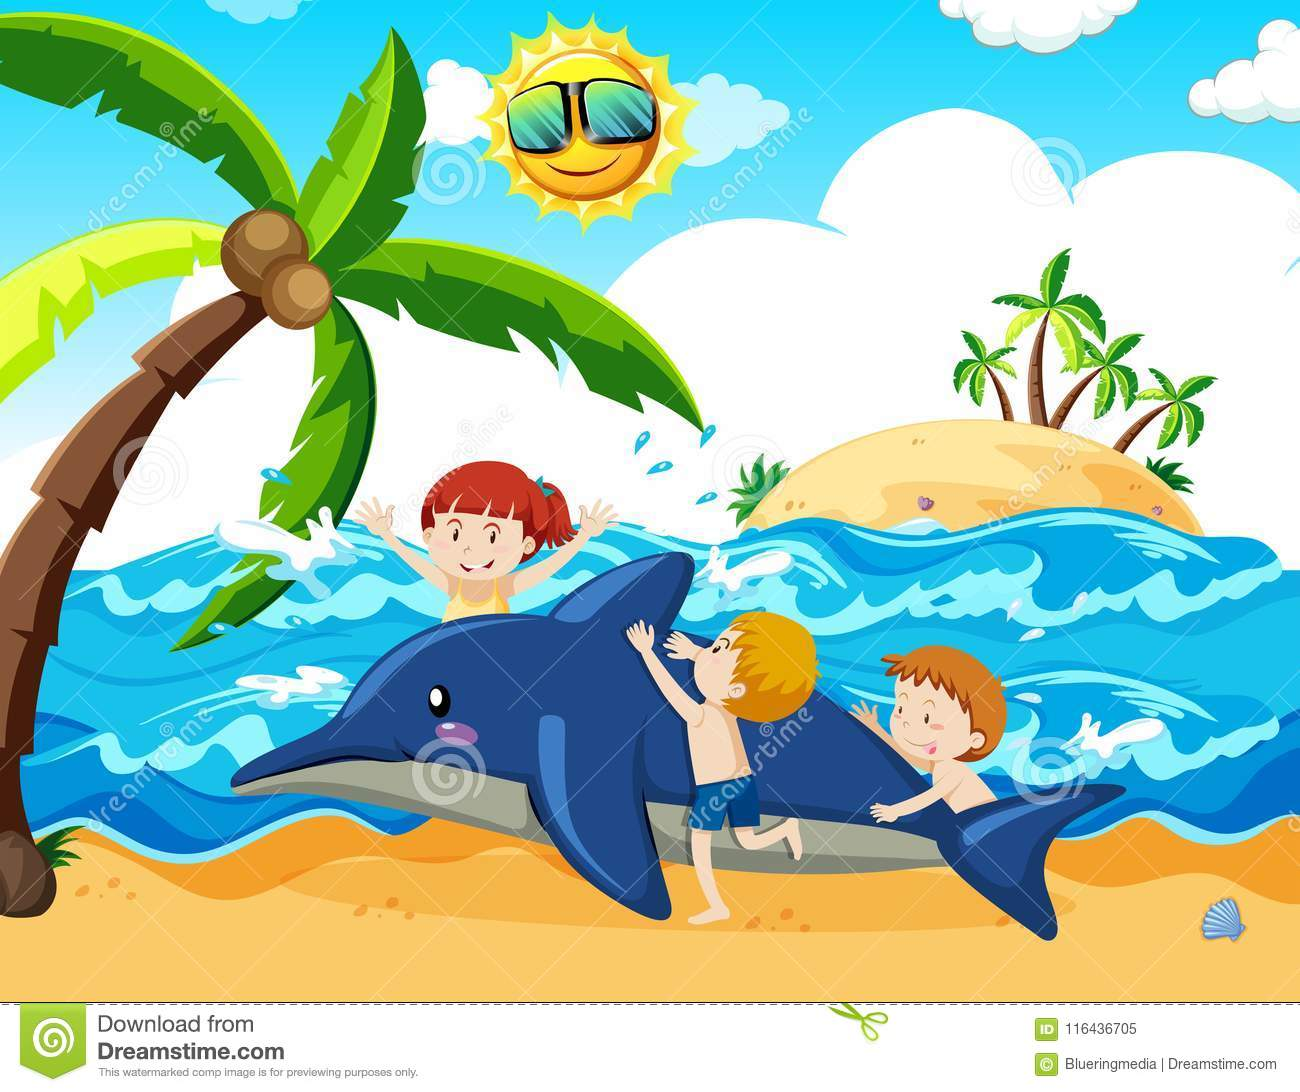 1c3b1556f44974 Kids And Inflatable Dolphin At The Beach Stock Vector - Illustration ...